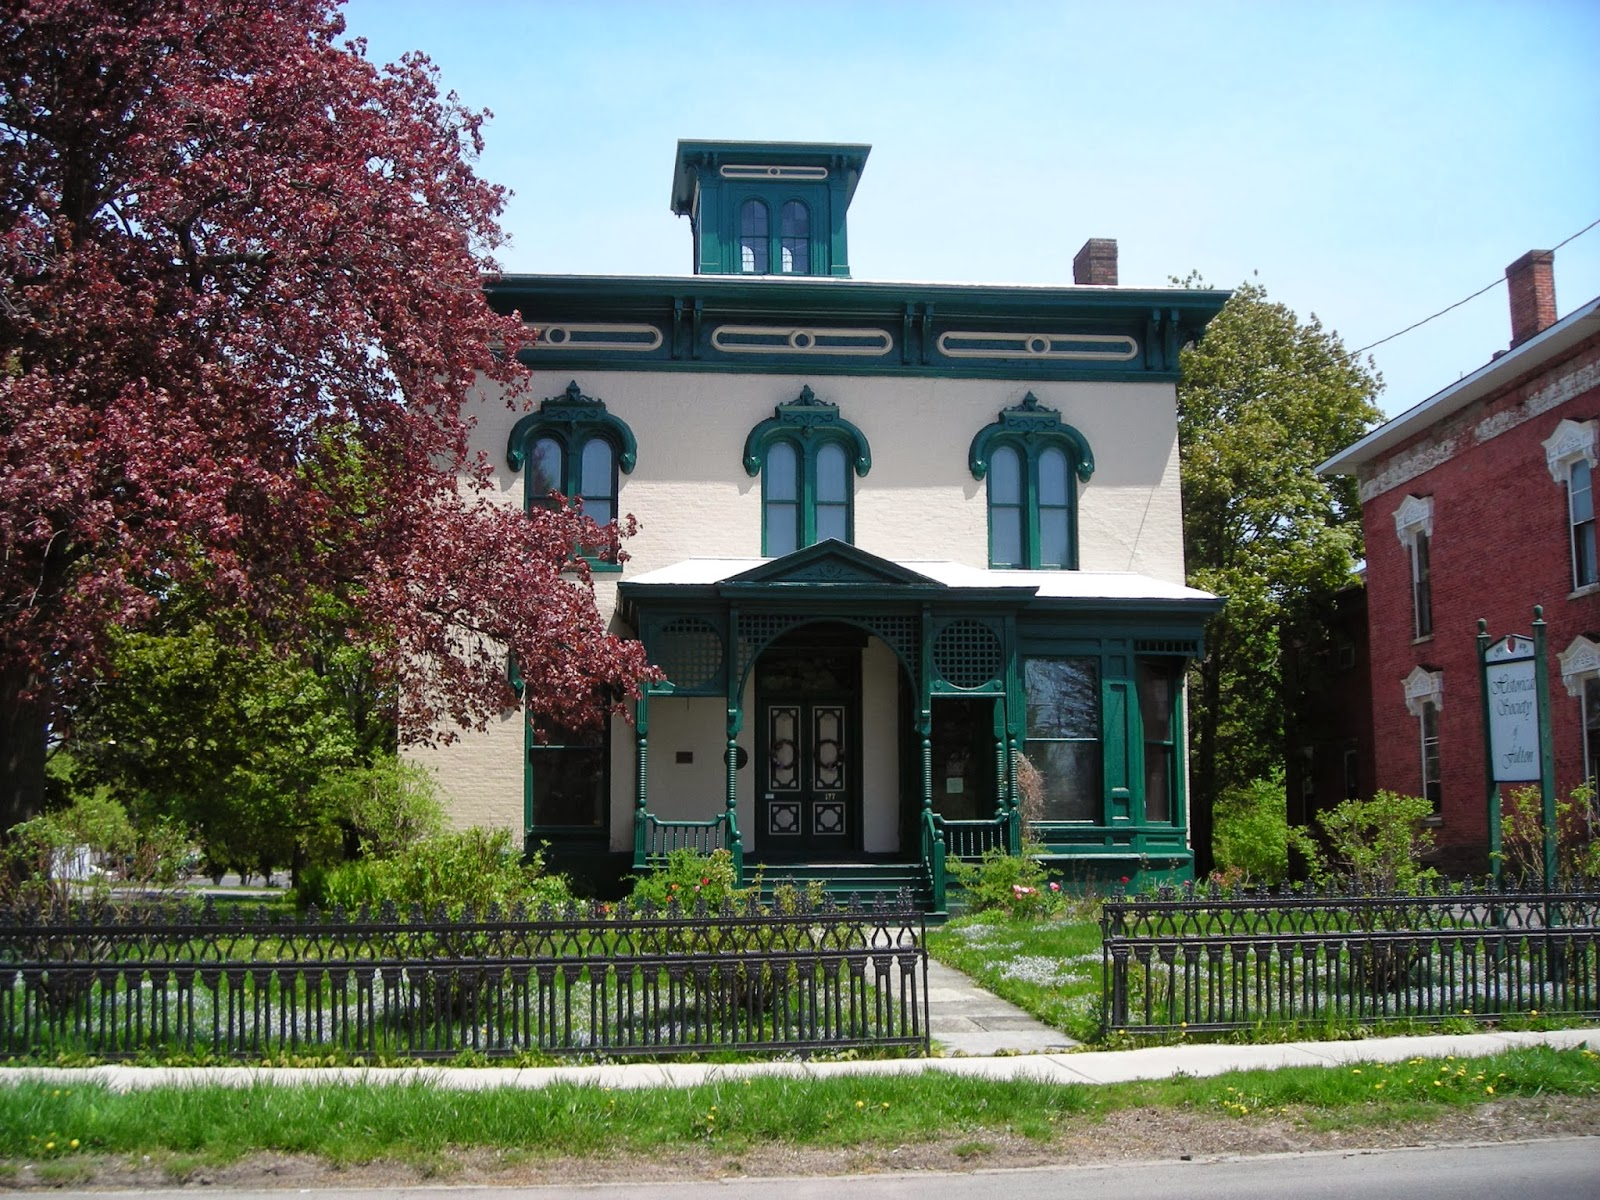 The John Wells Pratt House was built in 1863 and is now a museum operated by the Friends of History.